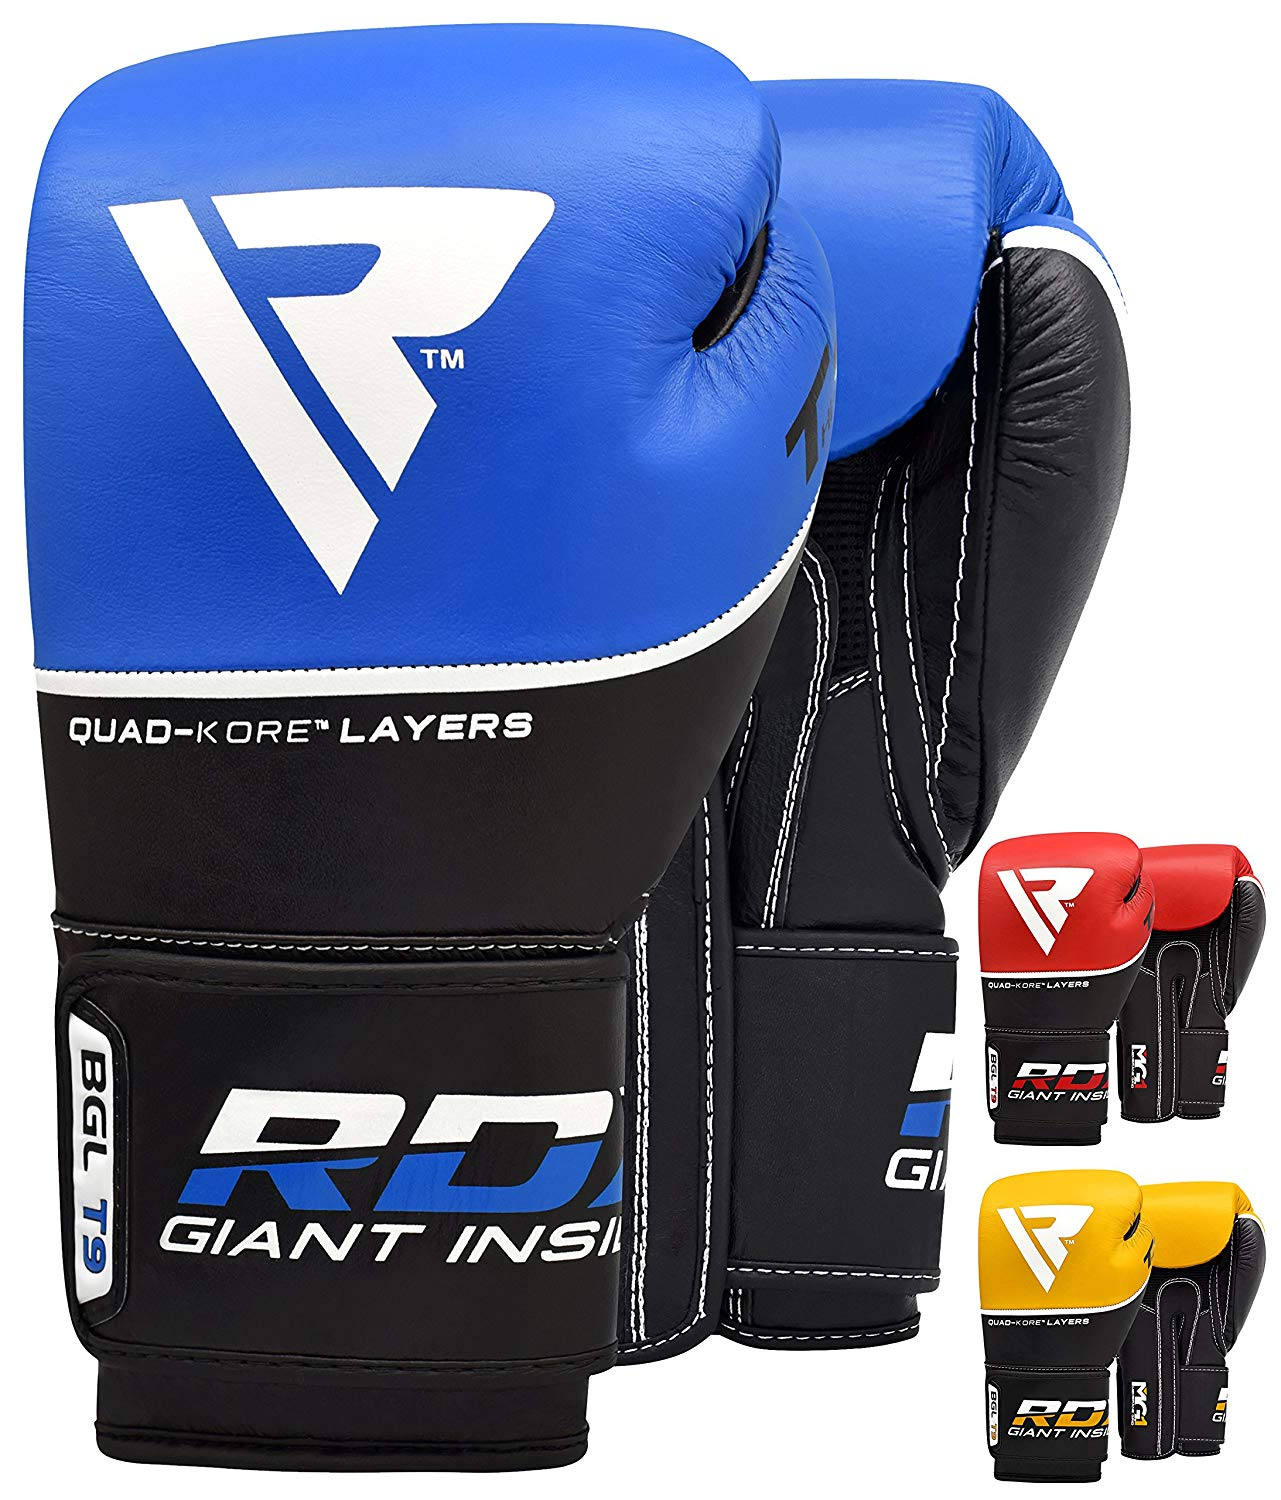 RDX Boxing Gloves for Training Kickboxing, Muay Thai and Fighting